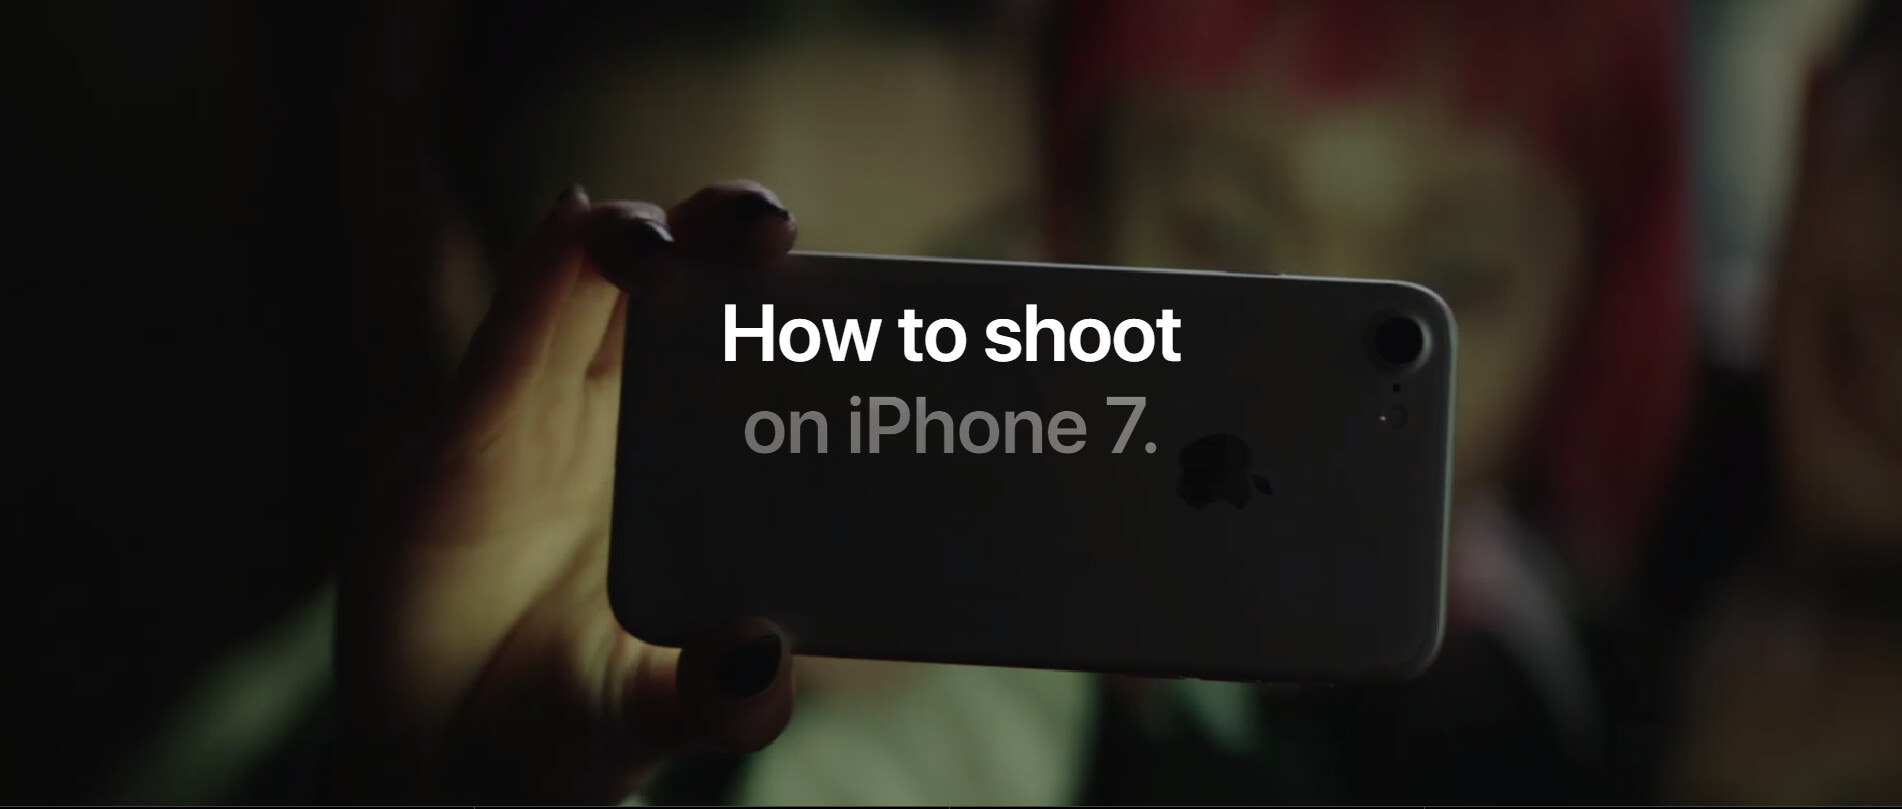 Wants to teach you how to use the iphones camera launches apple wants to teach you how to use the iphones camera launches photography tutorial series baditri Choice Image